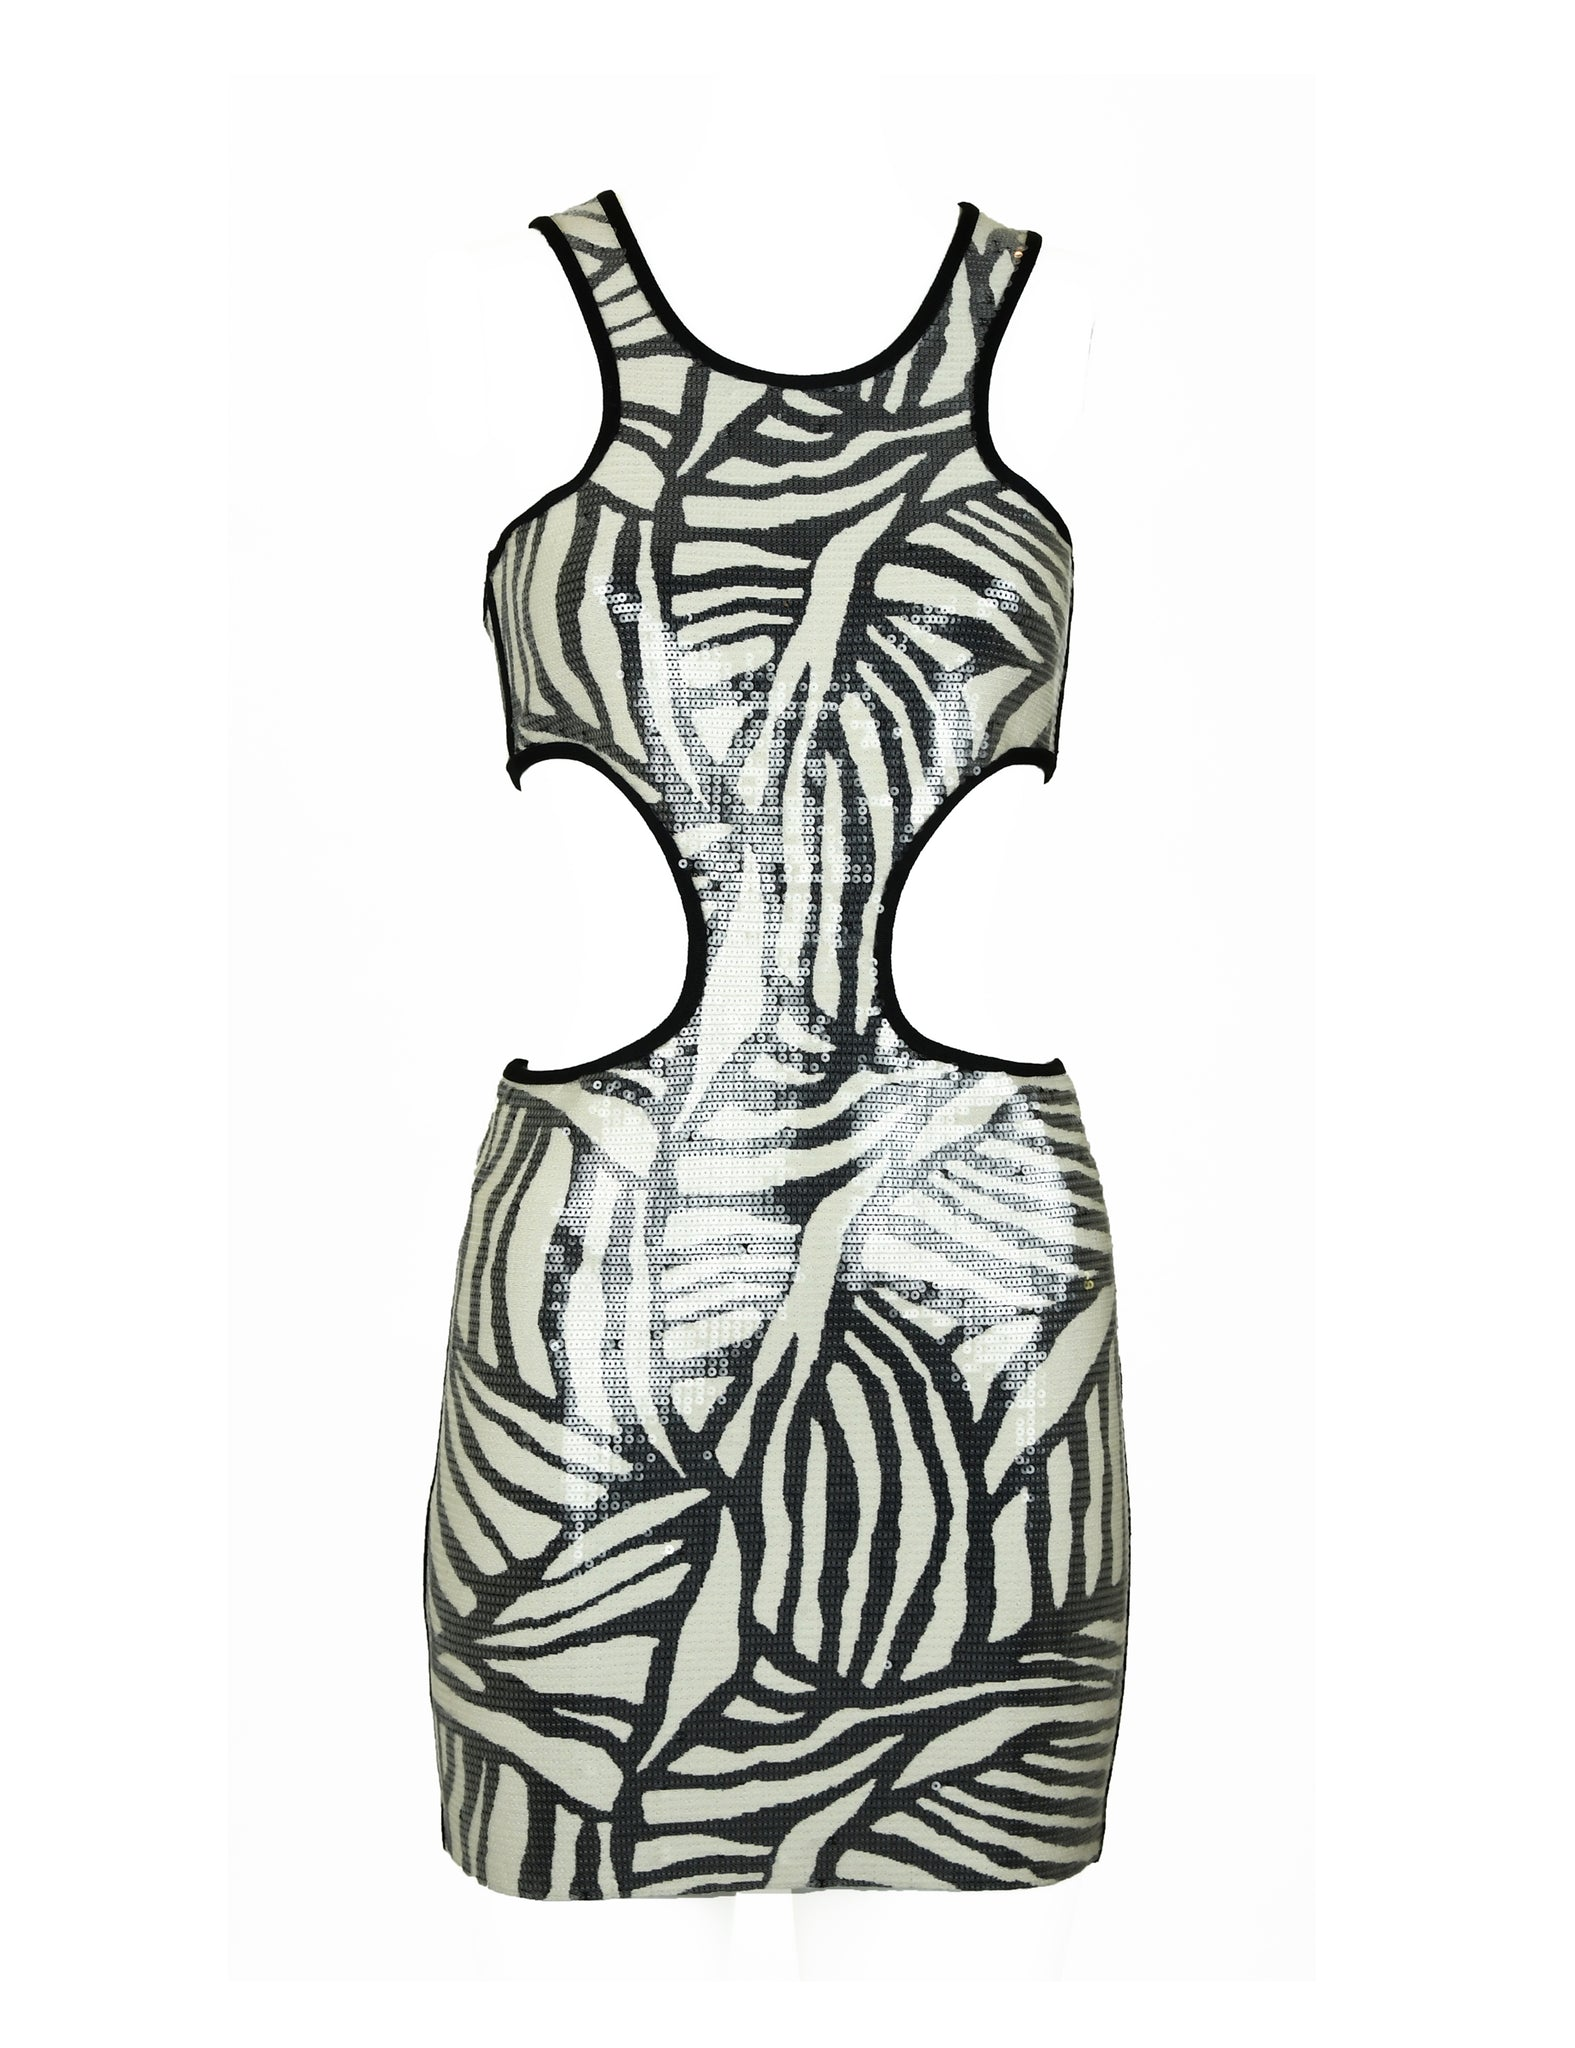 Herve Leger Zebra Sequin Cut Out Dress